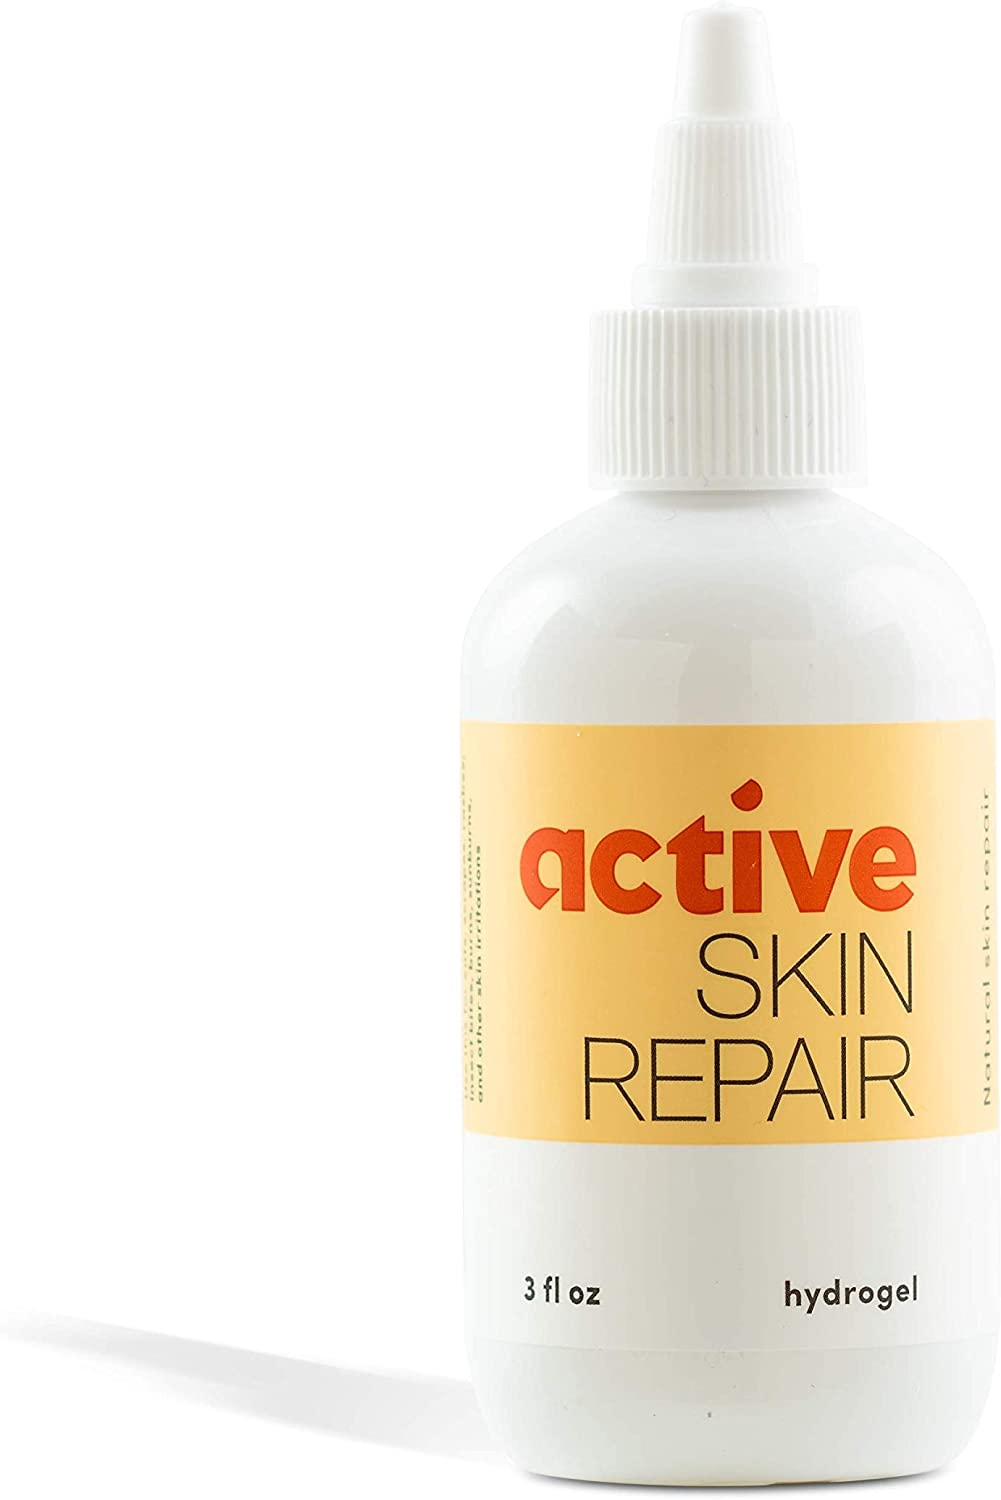 Active Skin Repair Hydrogel – The Natural & Non-Toxic Healing Ointment & Antiseptic Hydrogel for Minor cuts, scrapes, rashes, sunburns and Other Skin irritations (Single, Hydrogel)